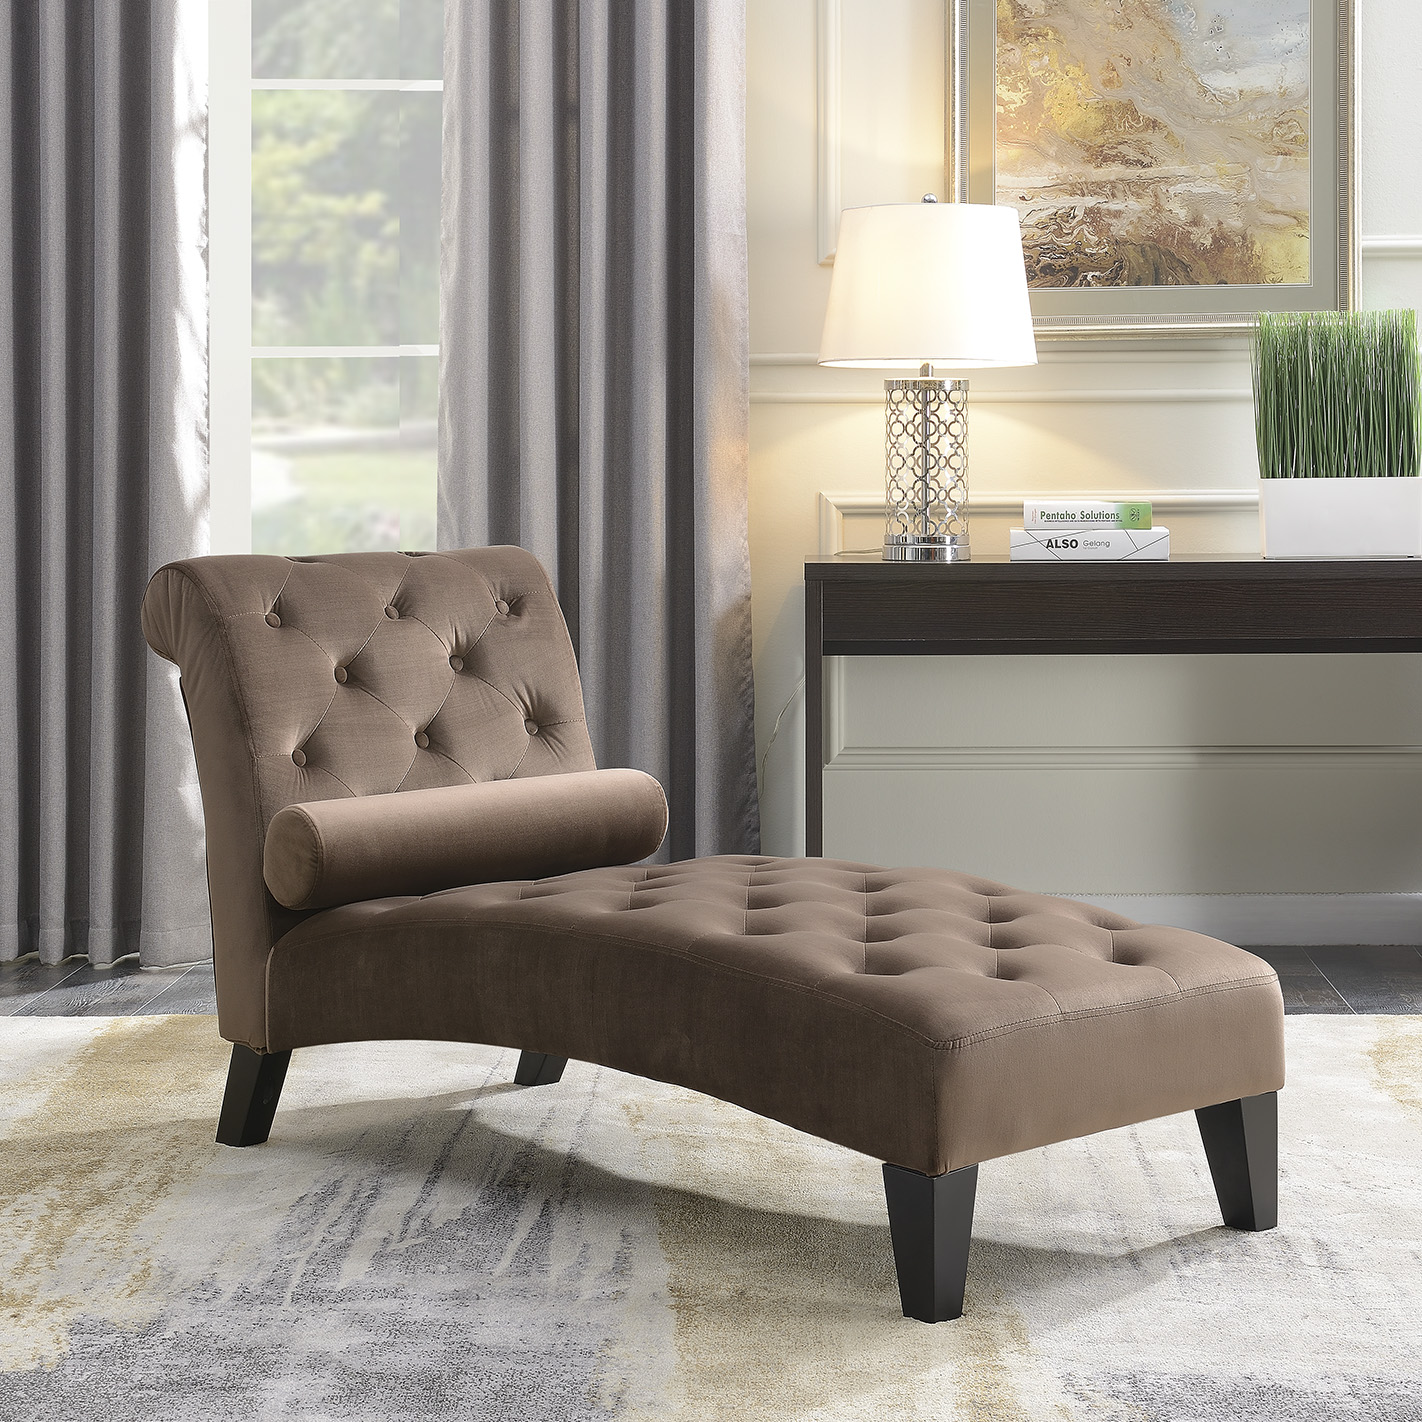 Details About Chaise Lounge Leisure Chair Rest Sofa Home Living Room Lumber Pillow Brown